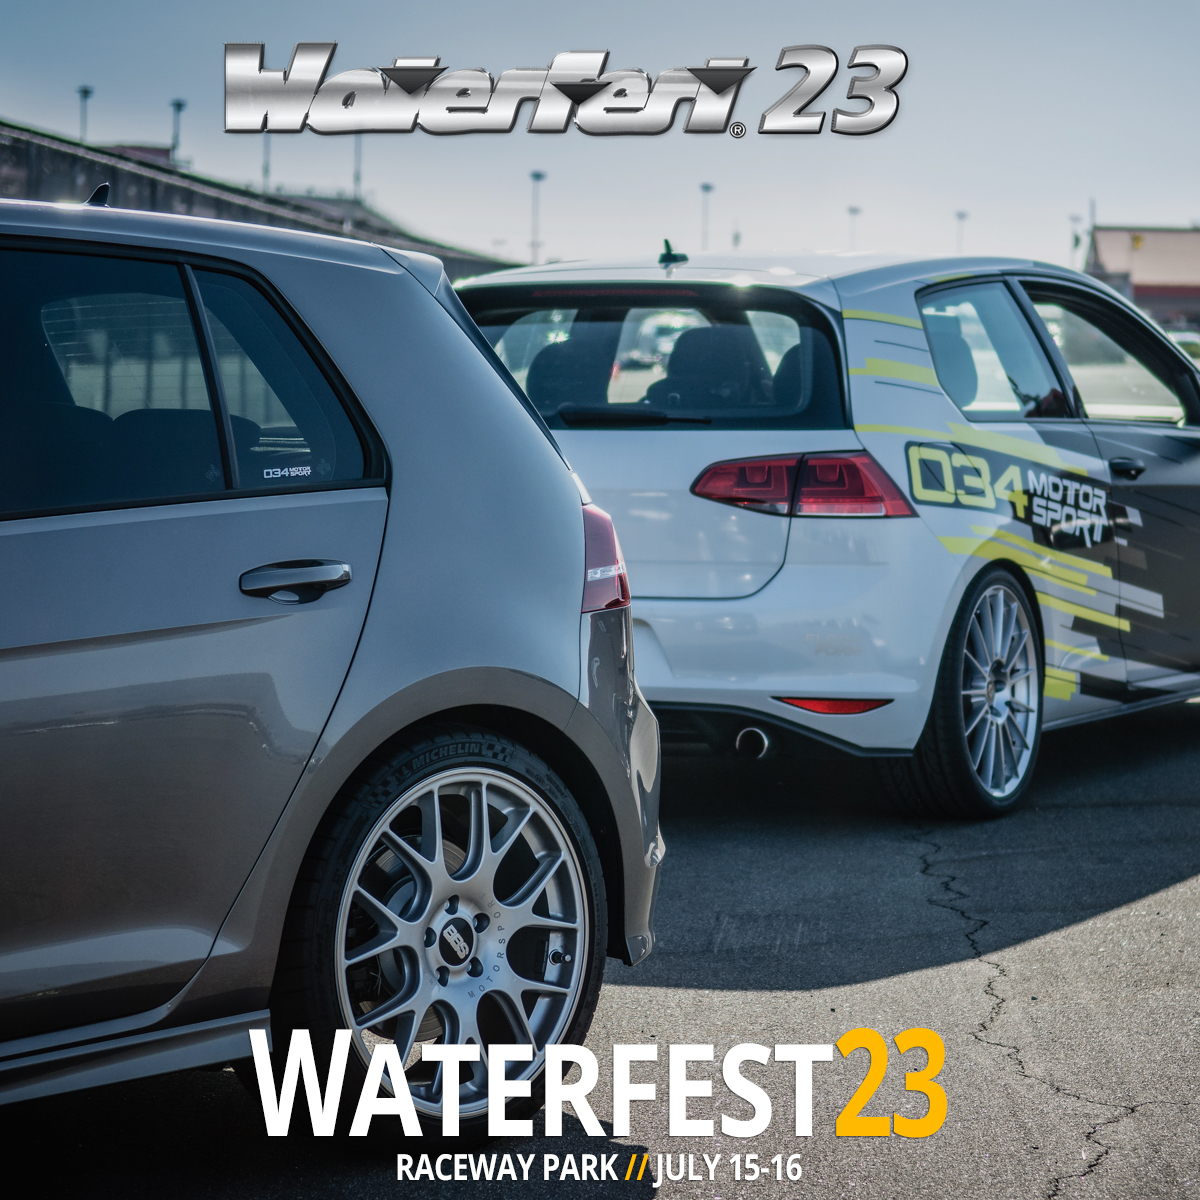 Waterfest 23 with 034Motorsport